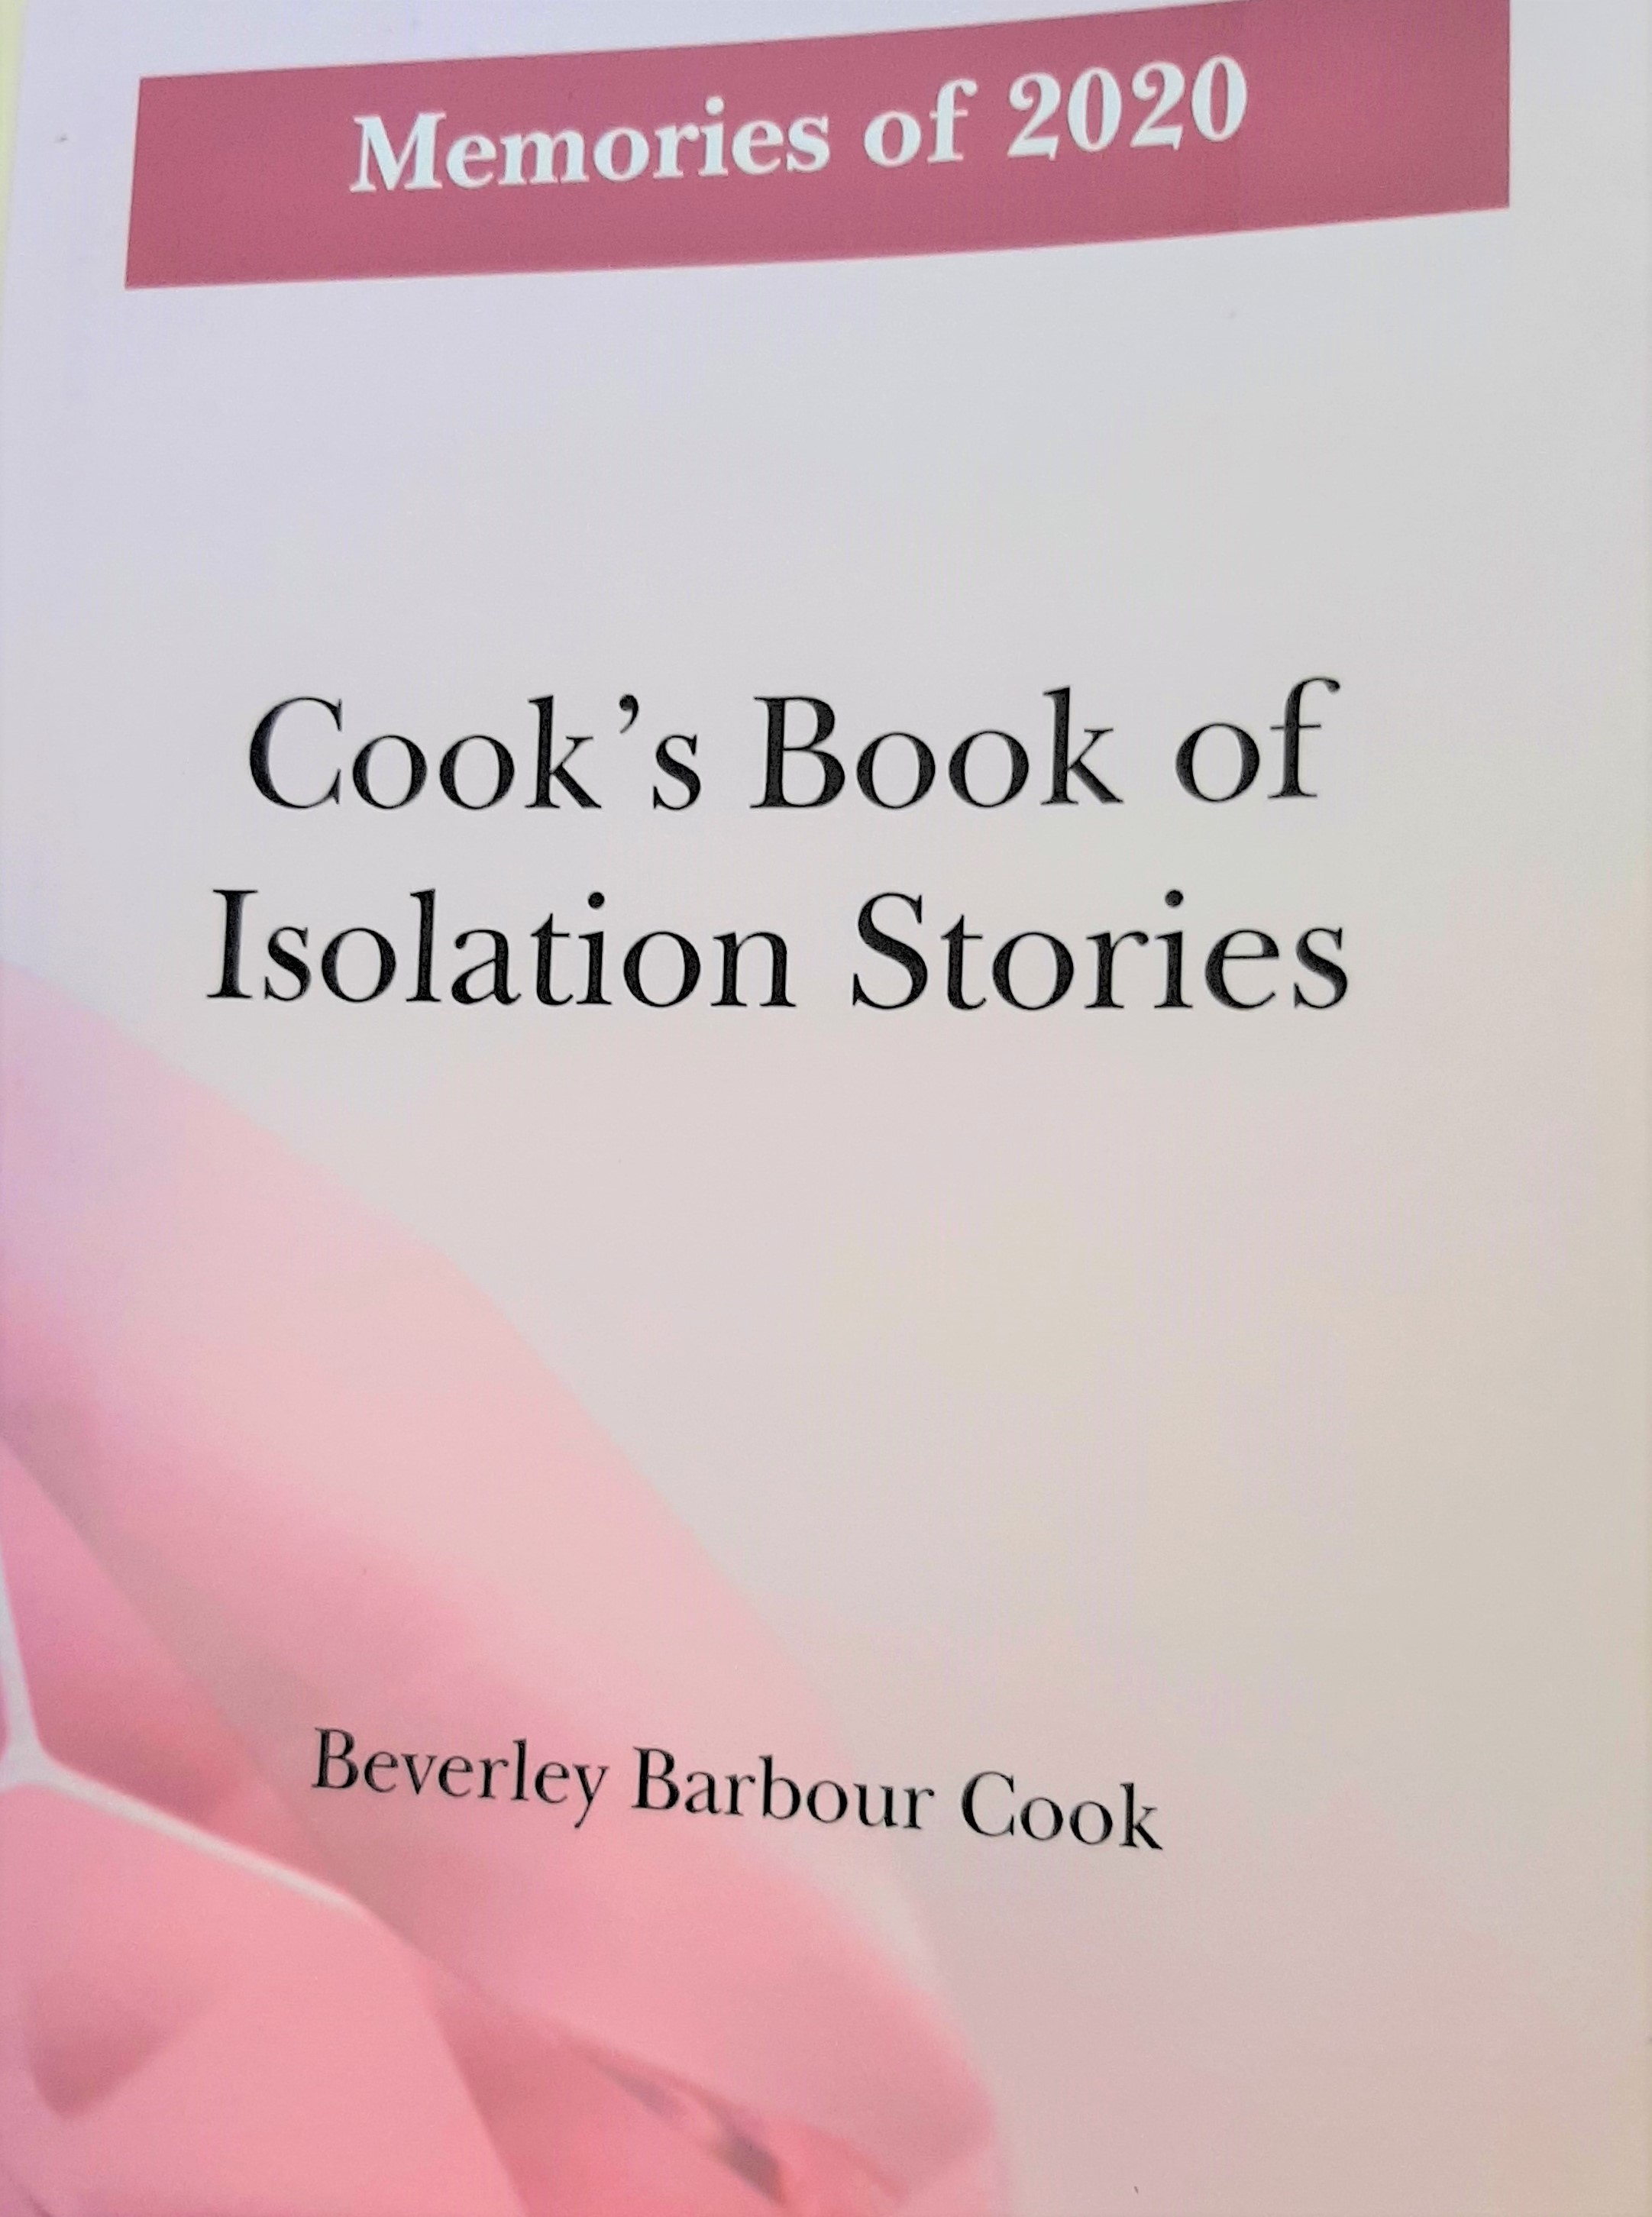 Cook's Book of Isolation Stories